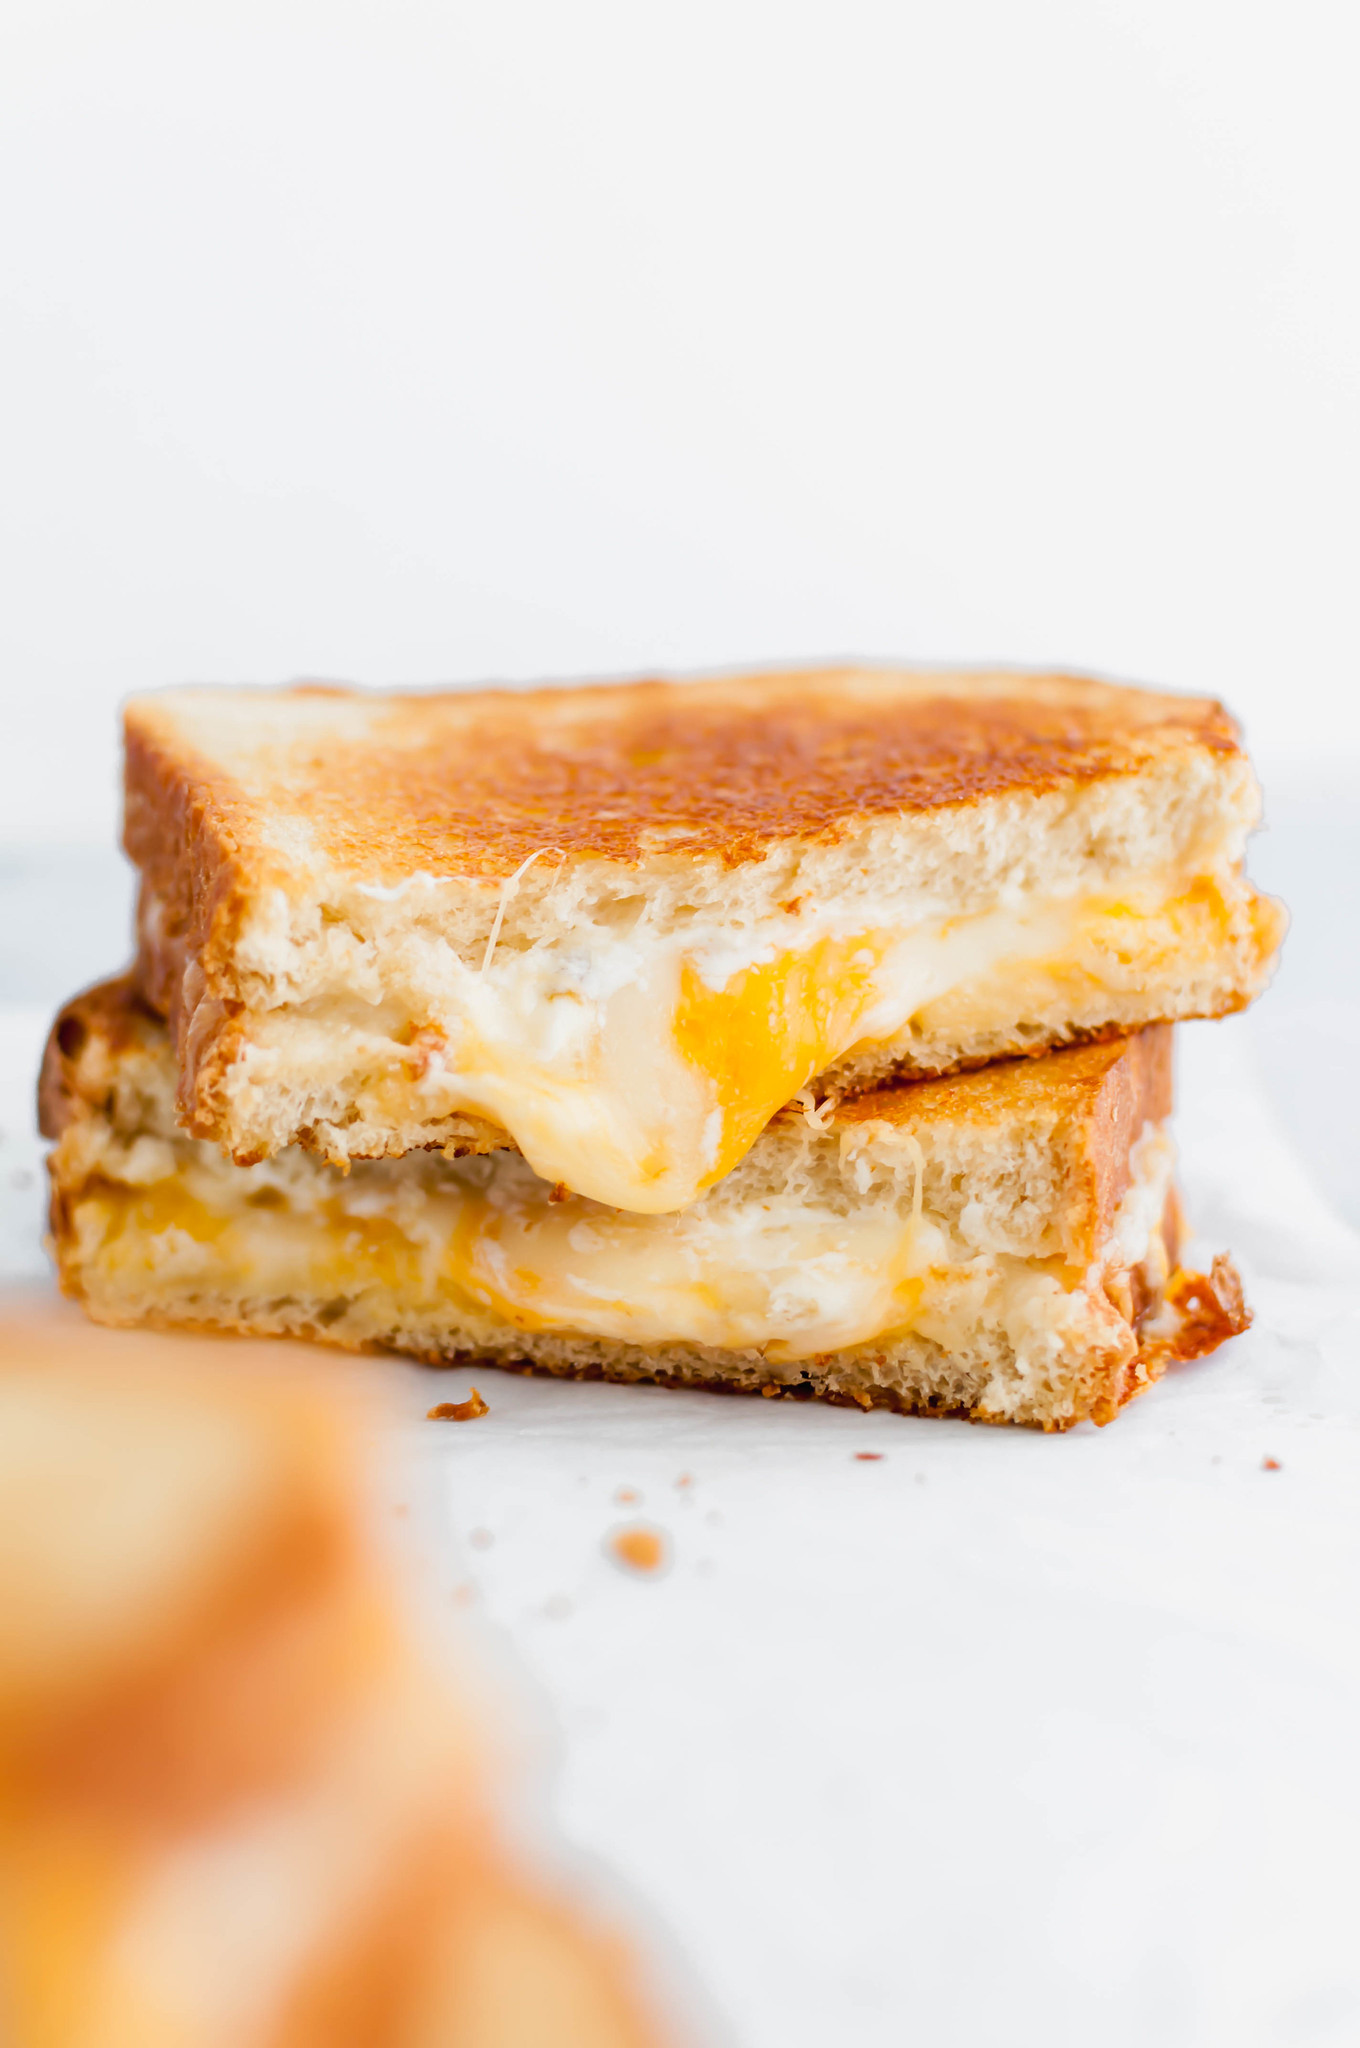 Get ready for the cheesiest grilled cheese of your life. This 4 Cheese Grilled Cheese is packed with a few favorites and a few surprises to make the ultimate sandwich.